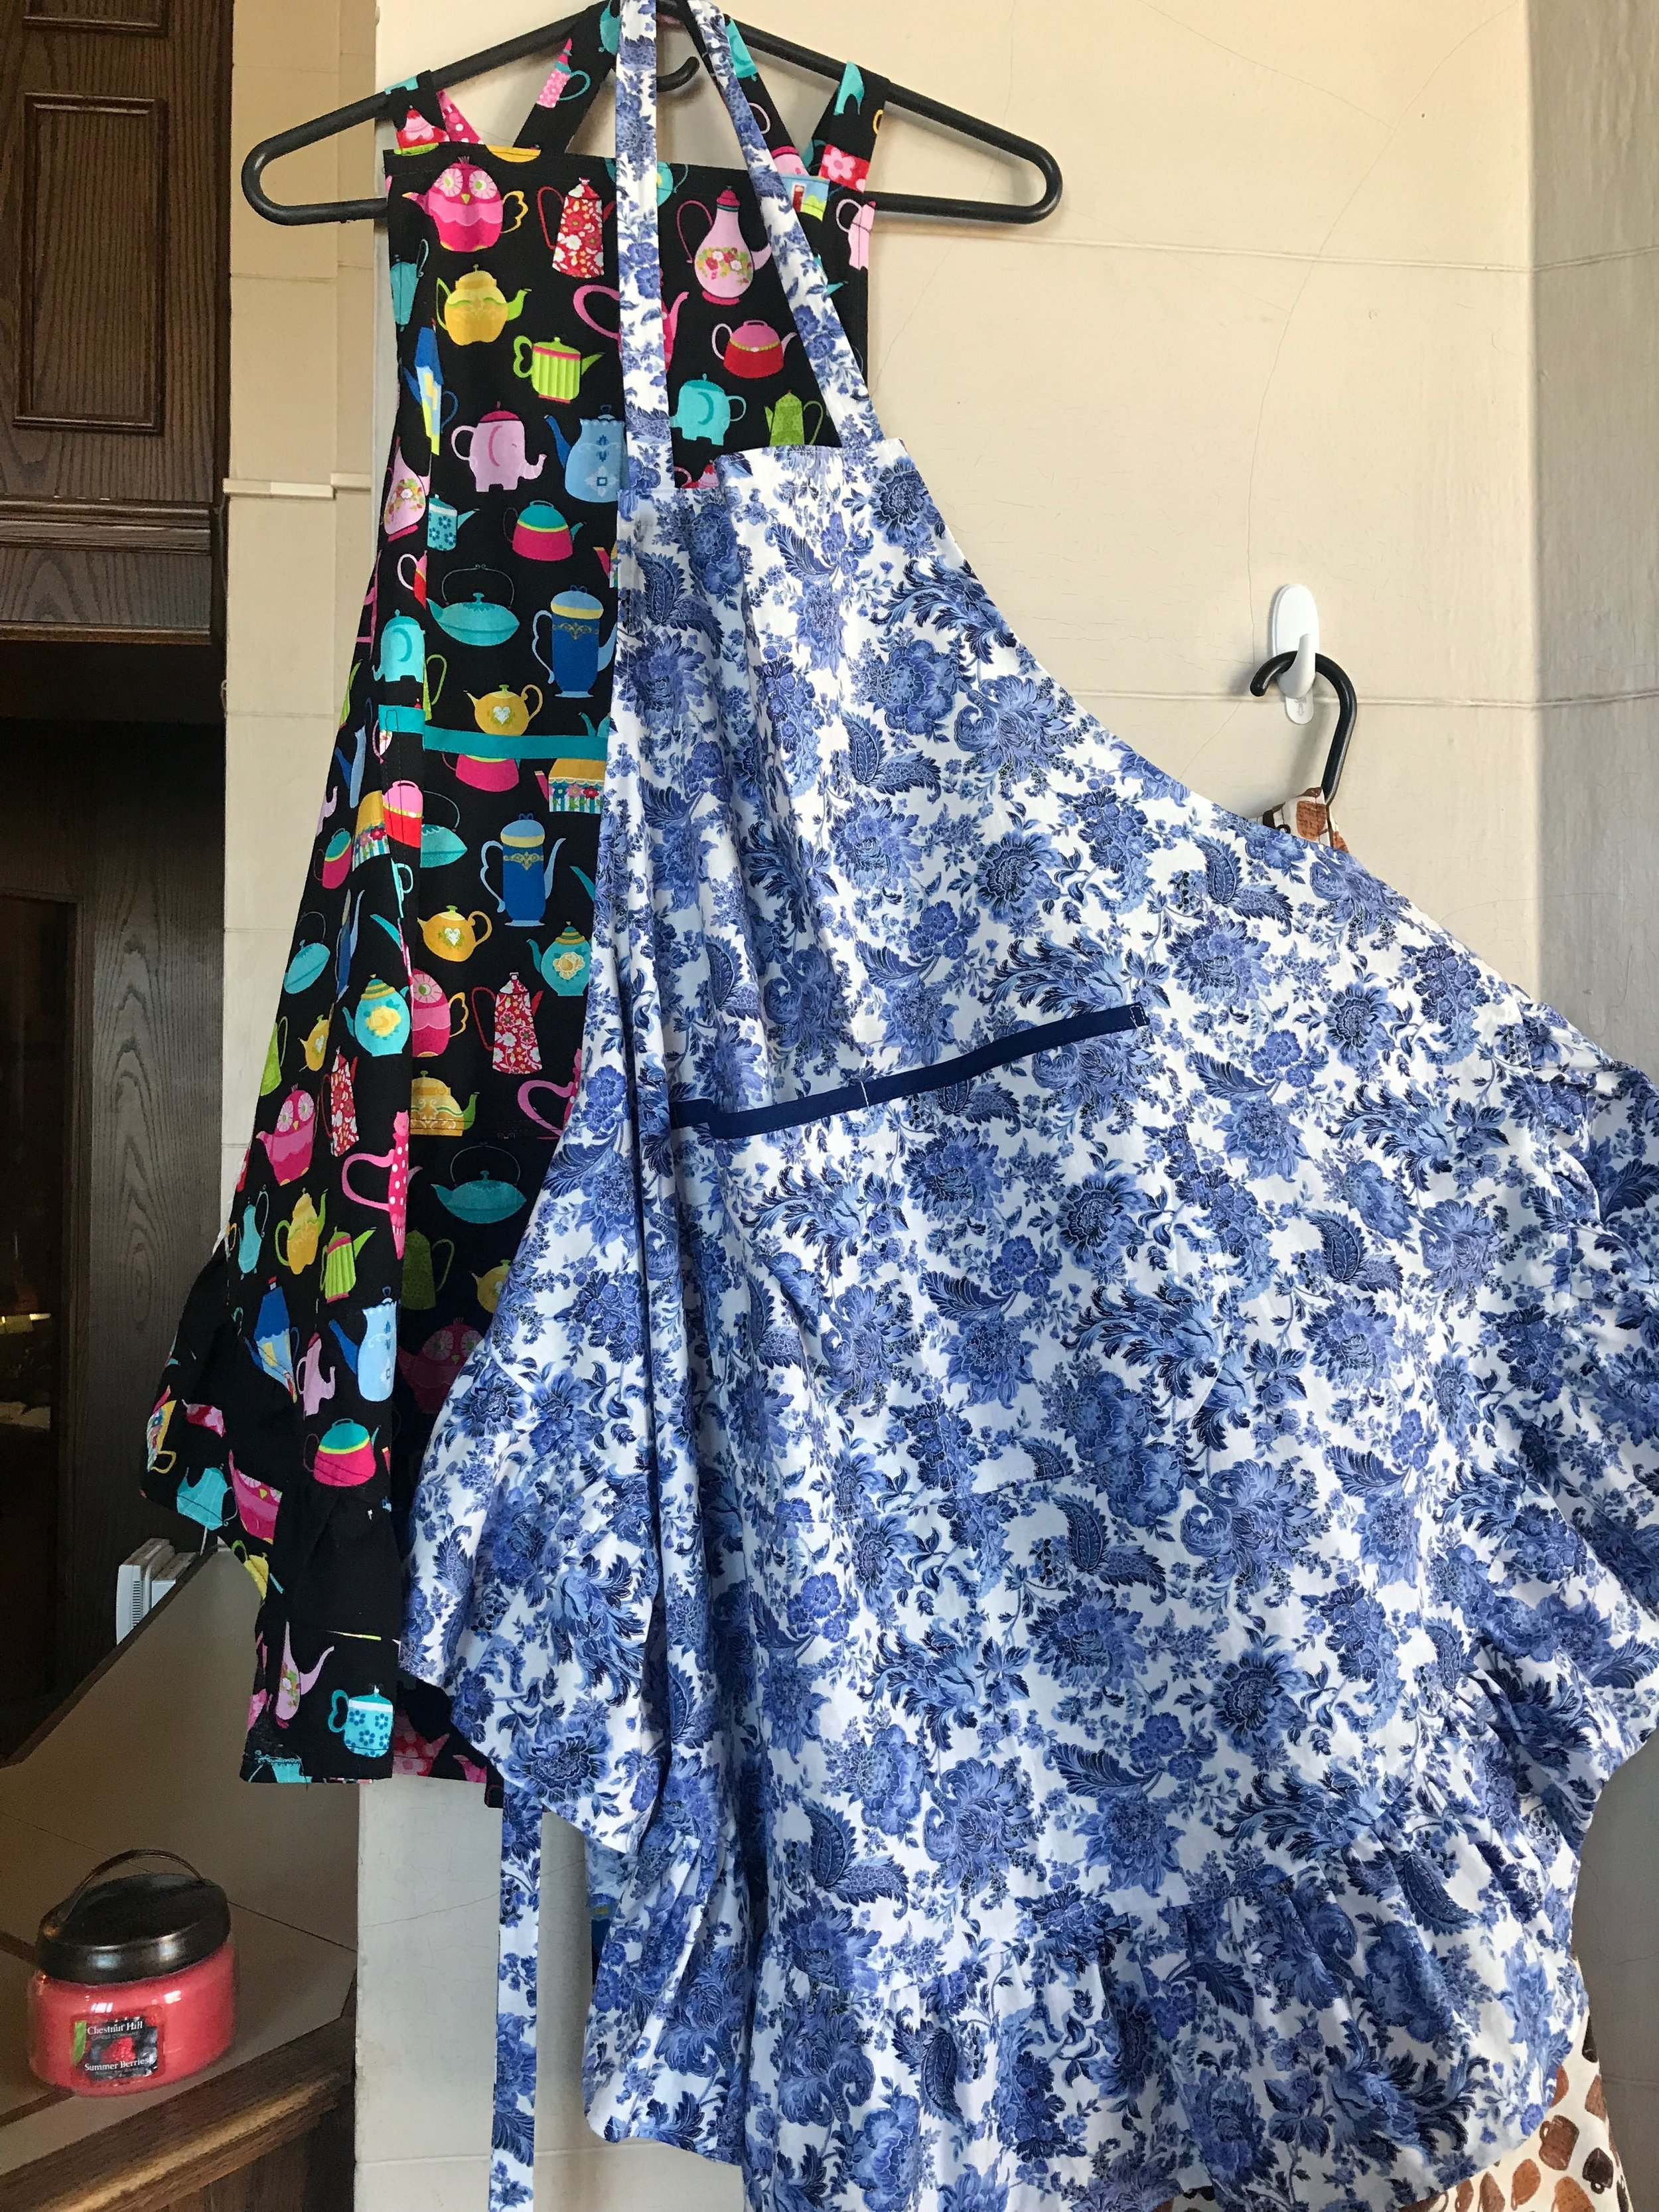 Locally made aprons